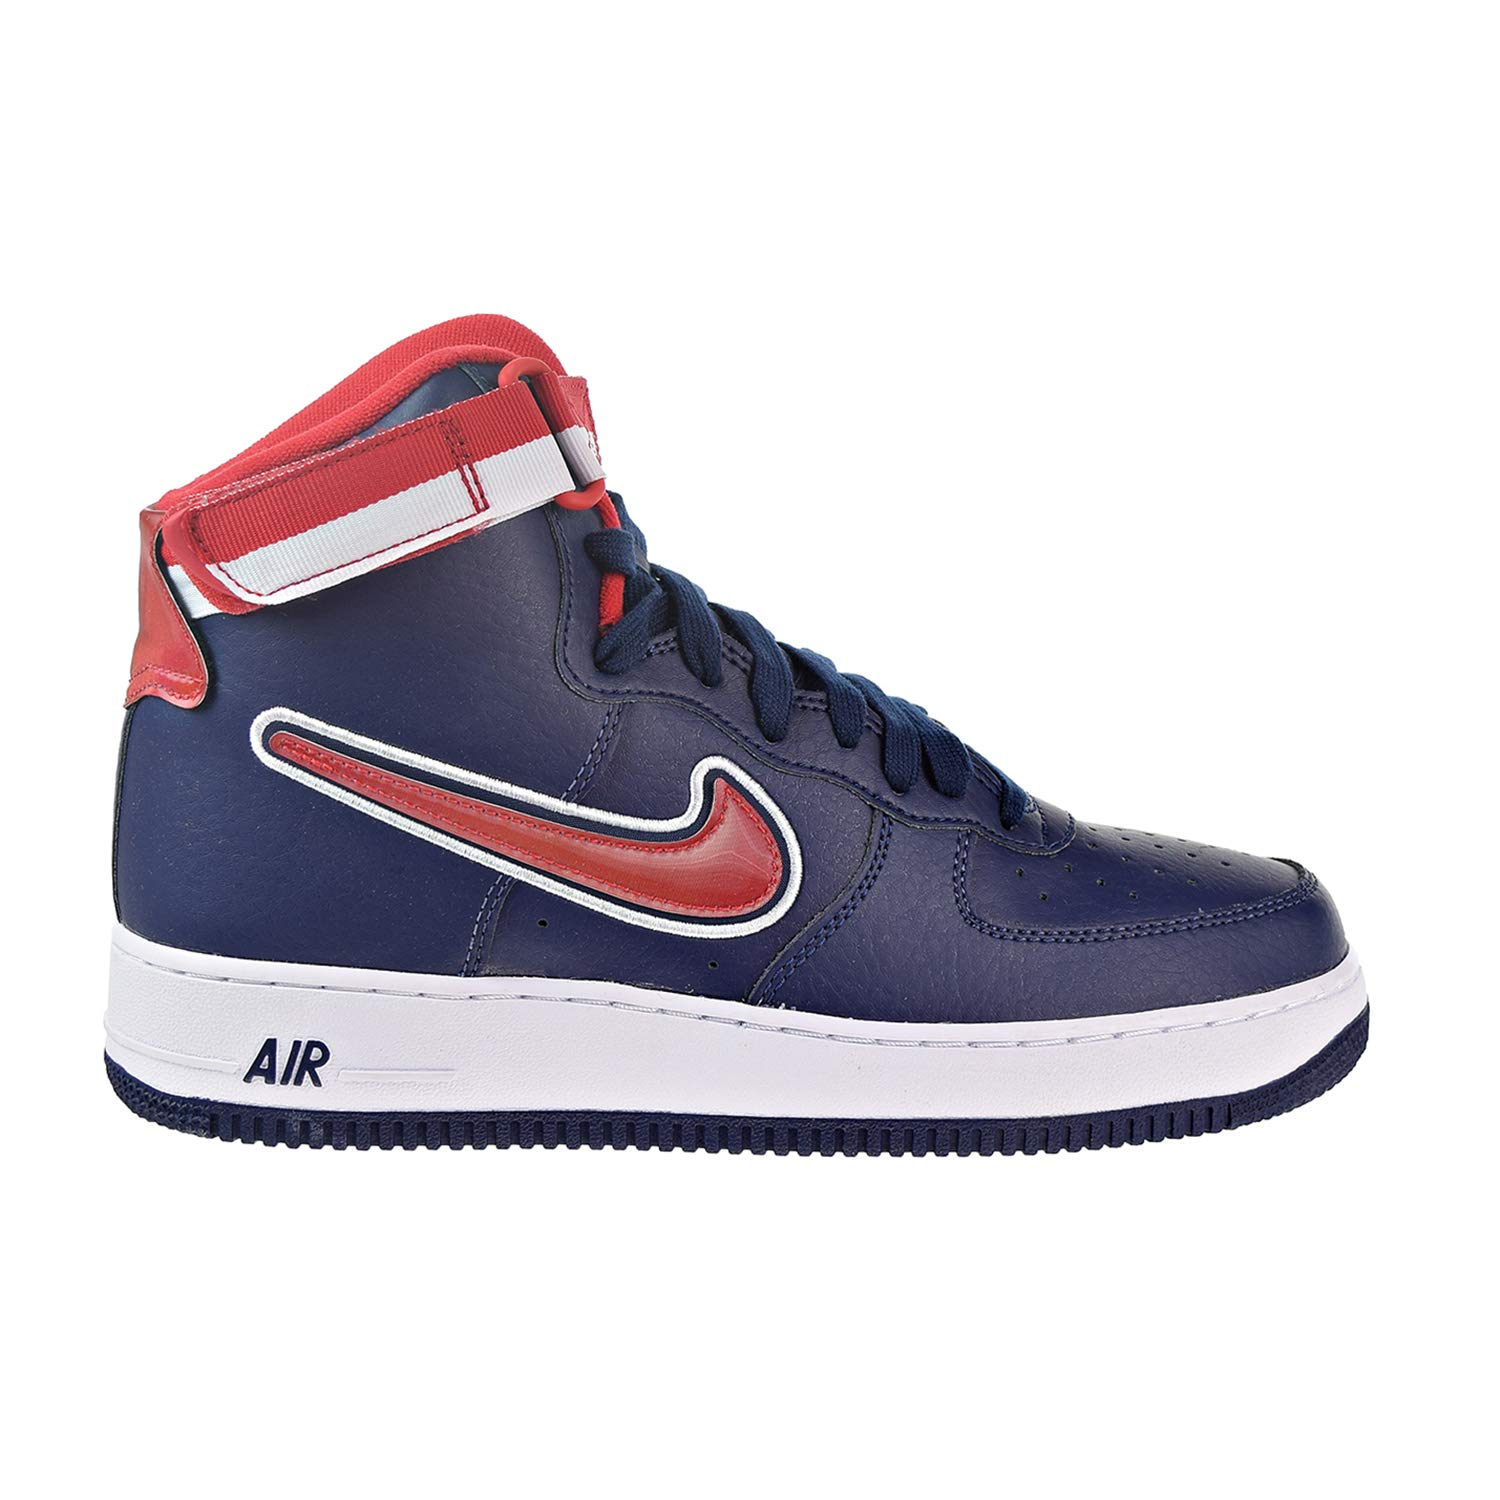 huge discount 59c16 a5e9a Amazon.com   NIKE Men s Air Force 1 High 07 LV8 Sport, Midnight Navy University  RED, 10 M US   Basketball